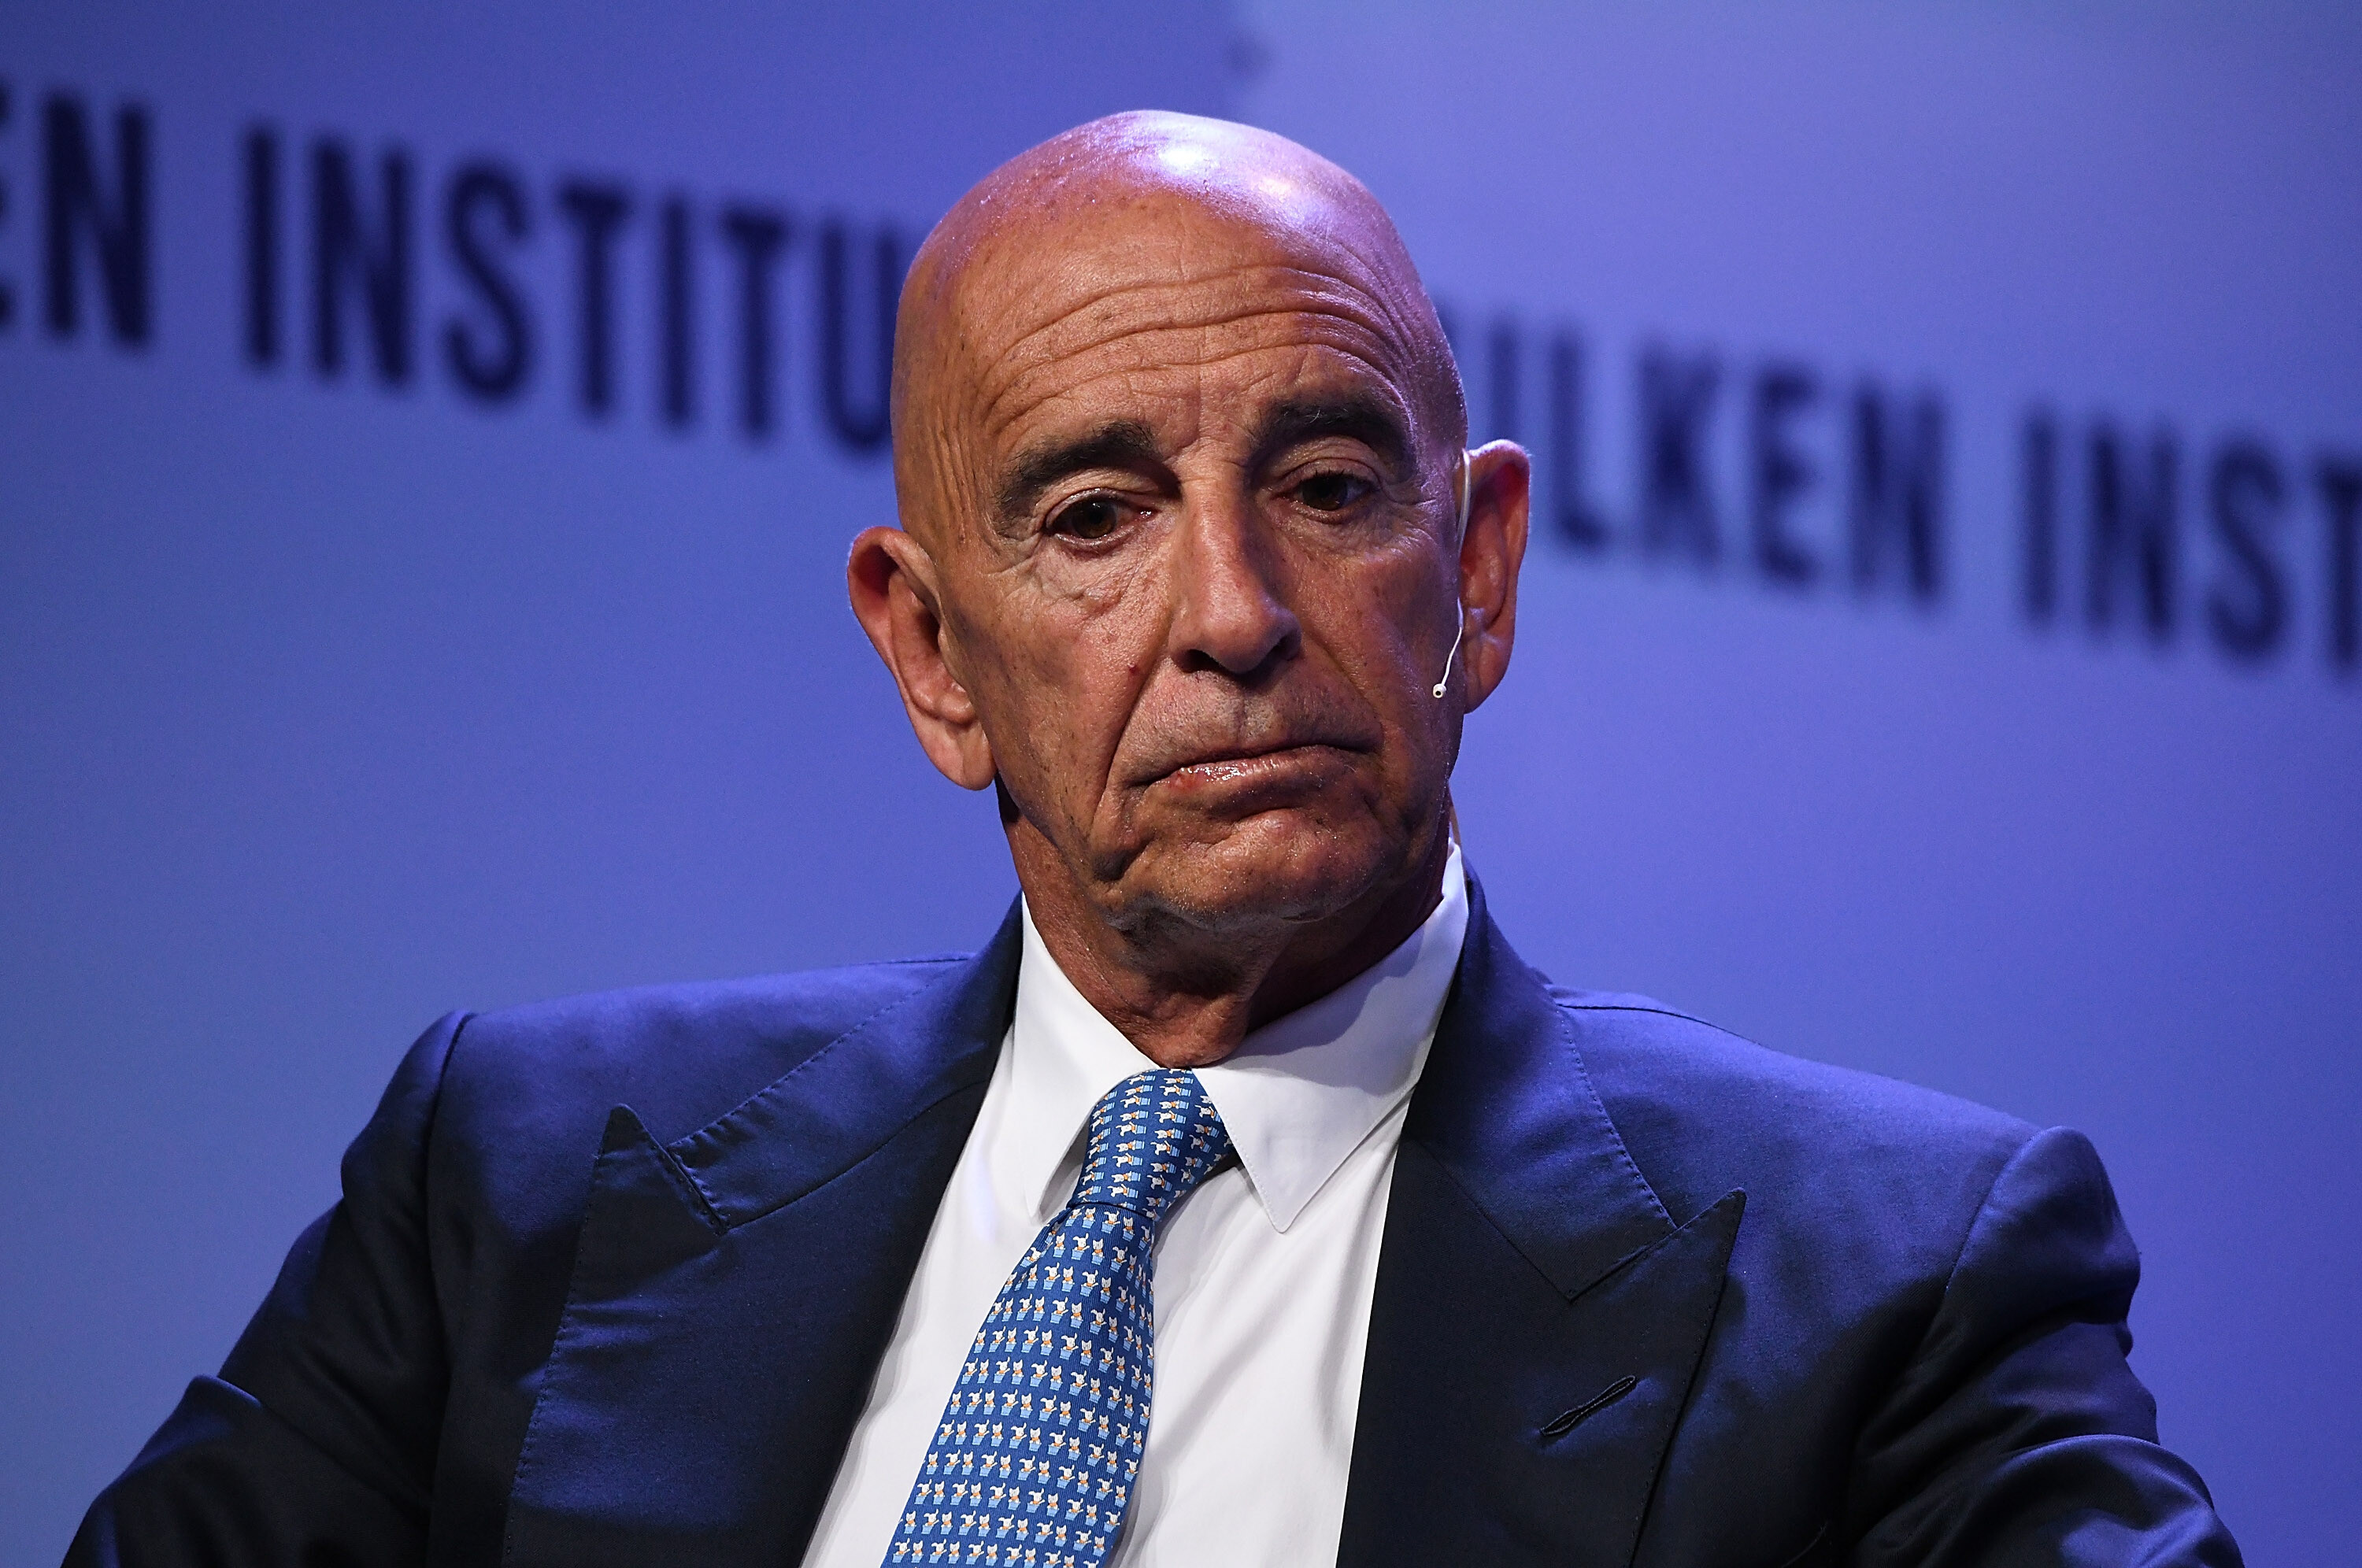 Trump ally Tom Barrack strikes a $250 million bail deal to get out of jail